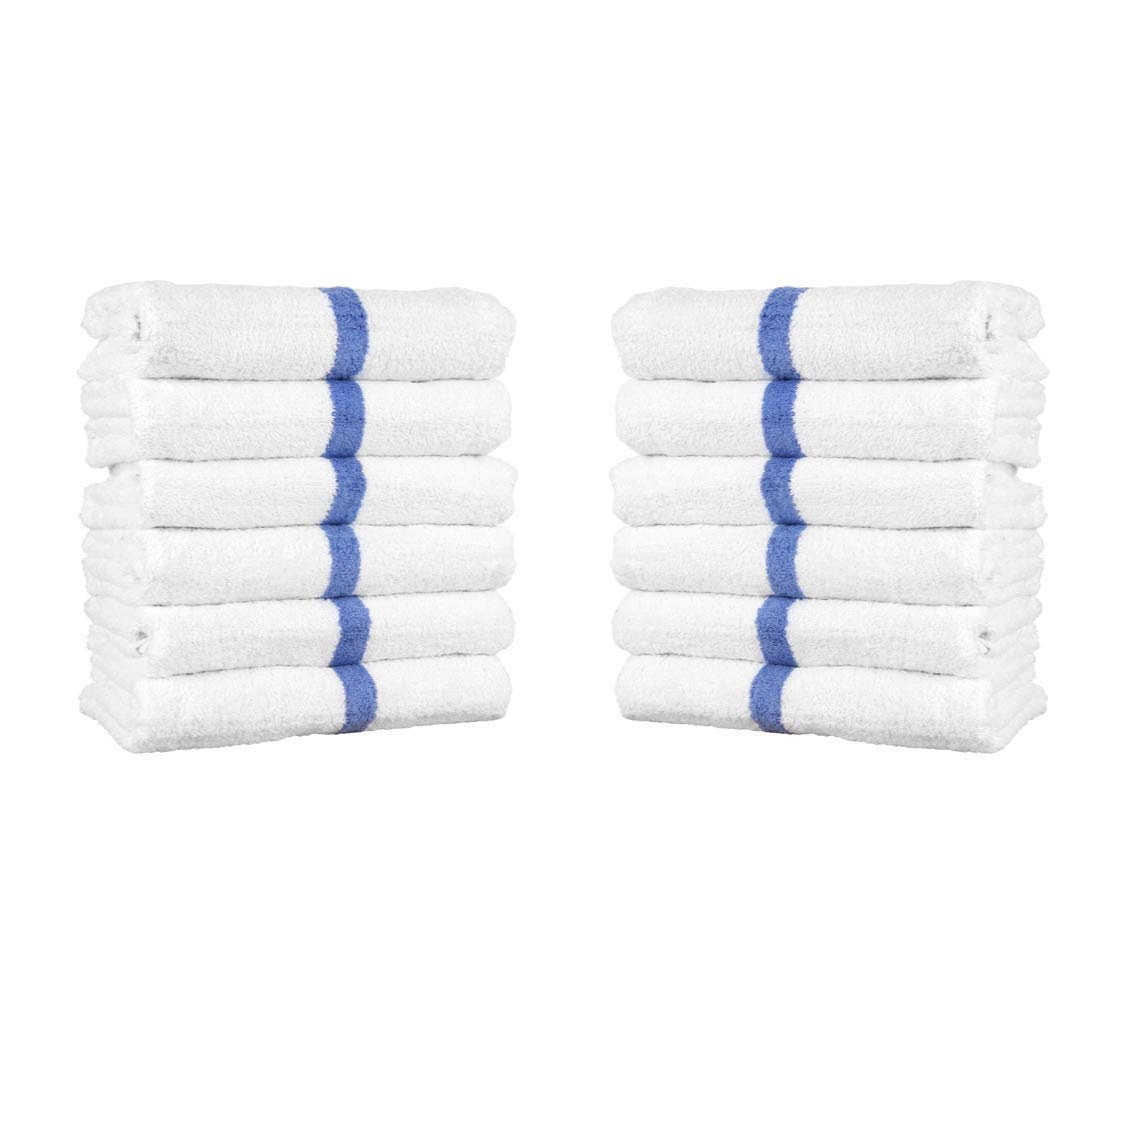 Arkwright White Cotton Bath Towels with Blue Center Stripes, Pack of 12 Absorbent Pool Towel for Hotel, Spa, Gym (22 x 44 Inch)